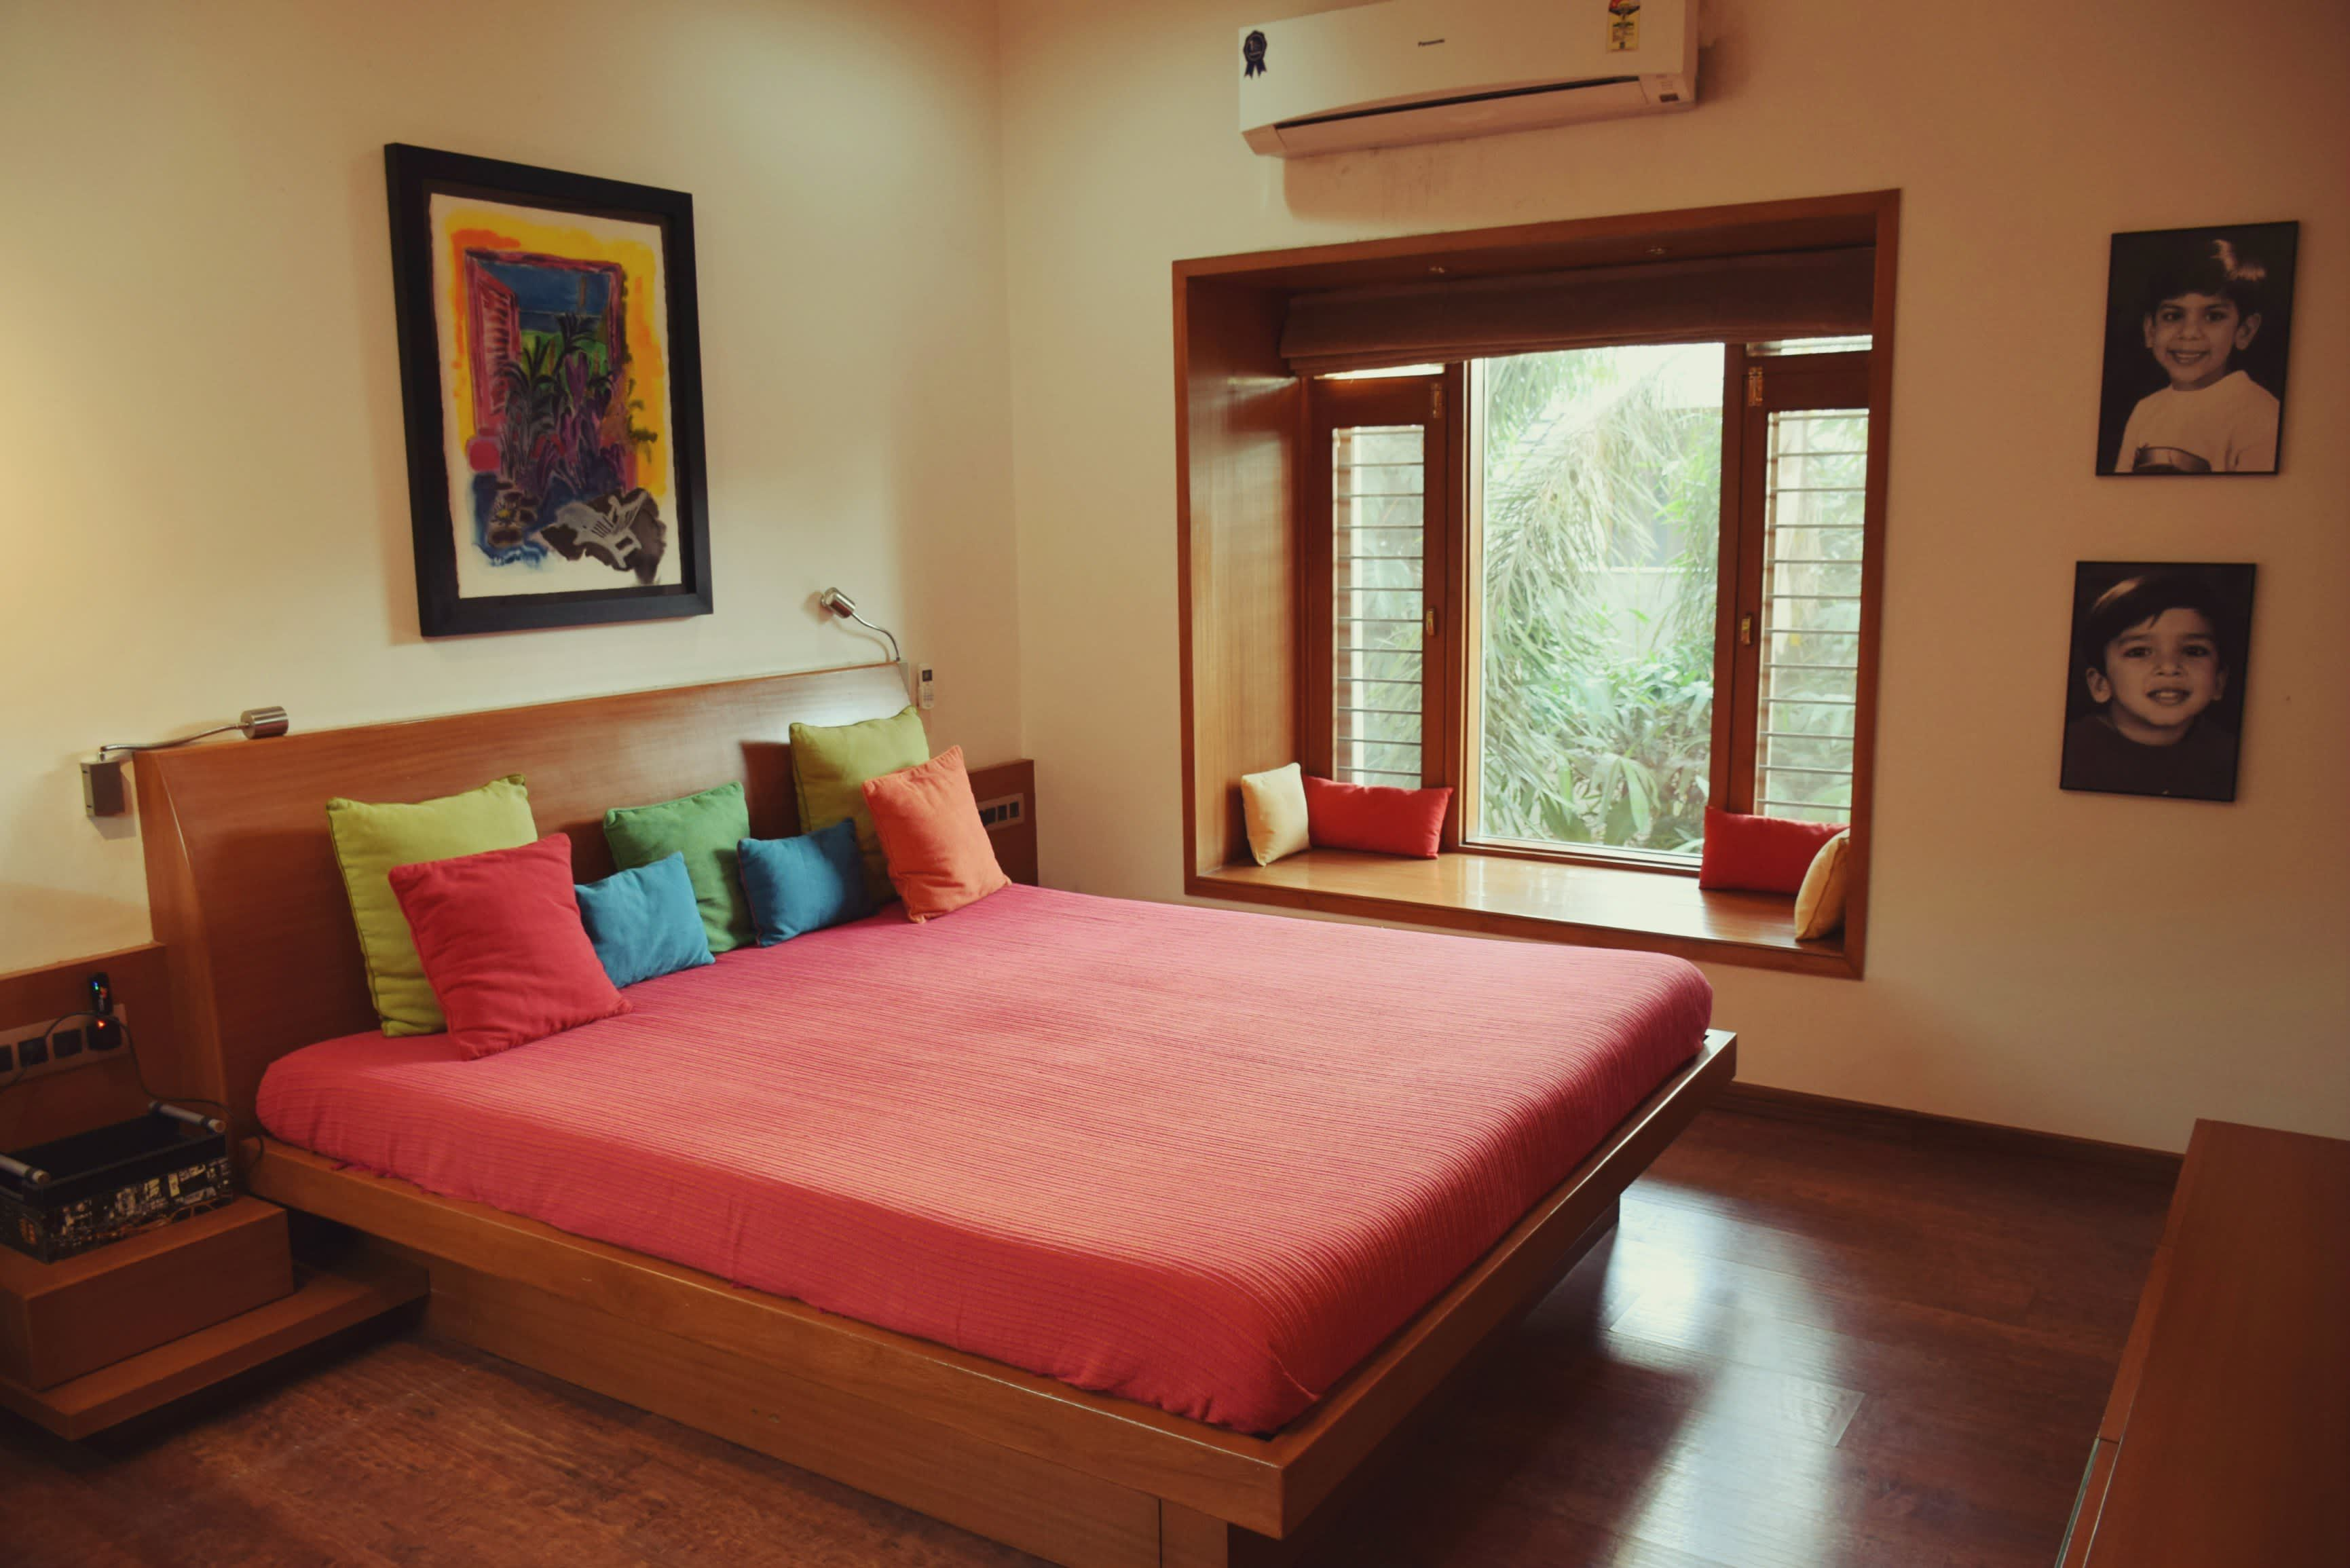 Alpavi & Utpal's Mix of Old and New | Indian bedroom decor ...